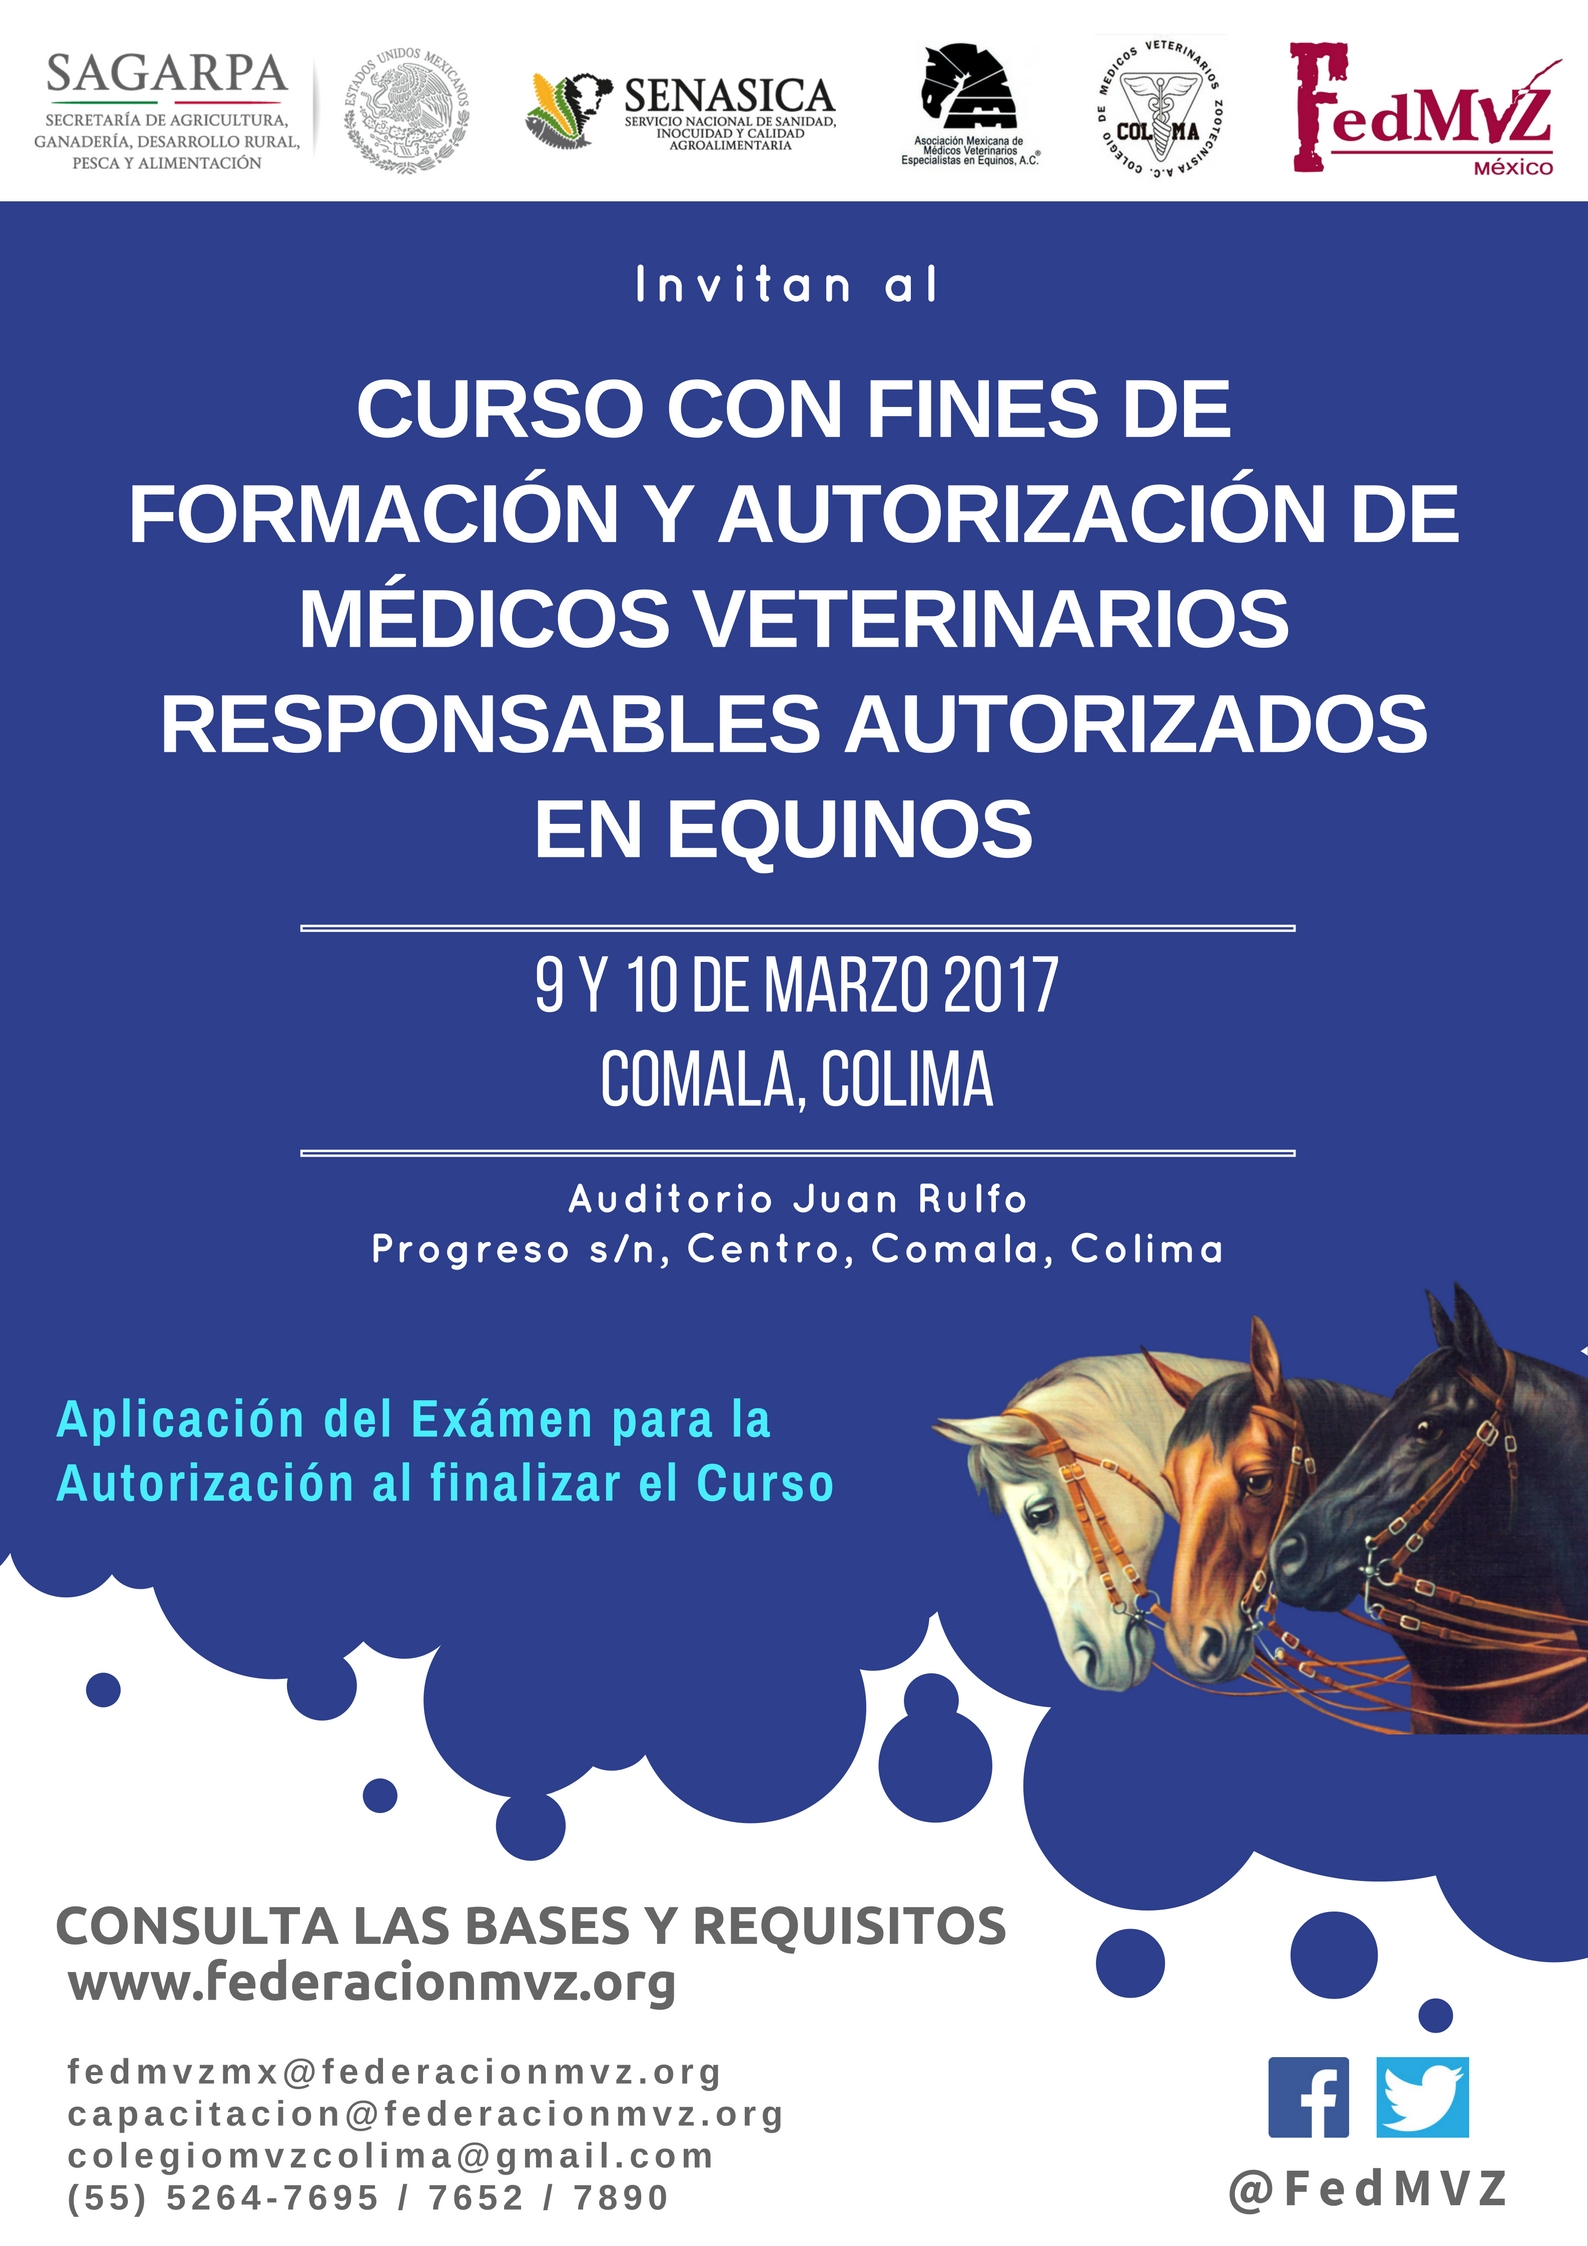 /cms/uploads/image/file/251246/CURSO_MVRA_EQUINOS_COLIMA_MARZO_9_Y_10.jpg